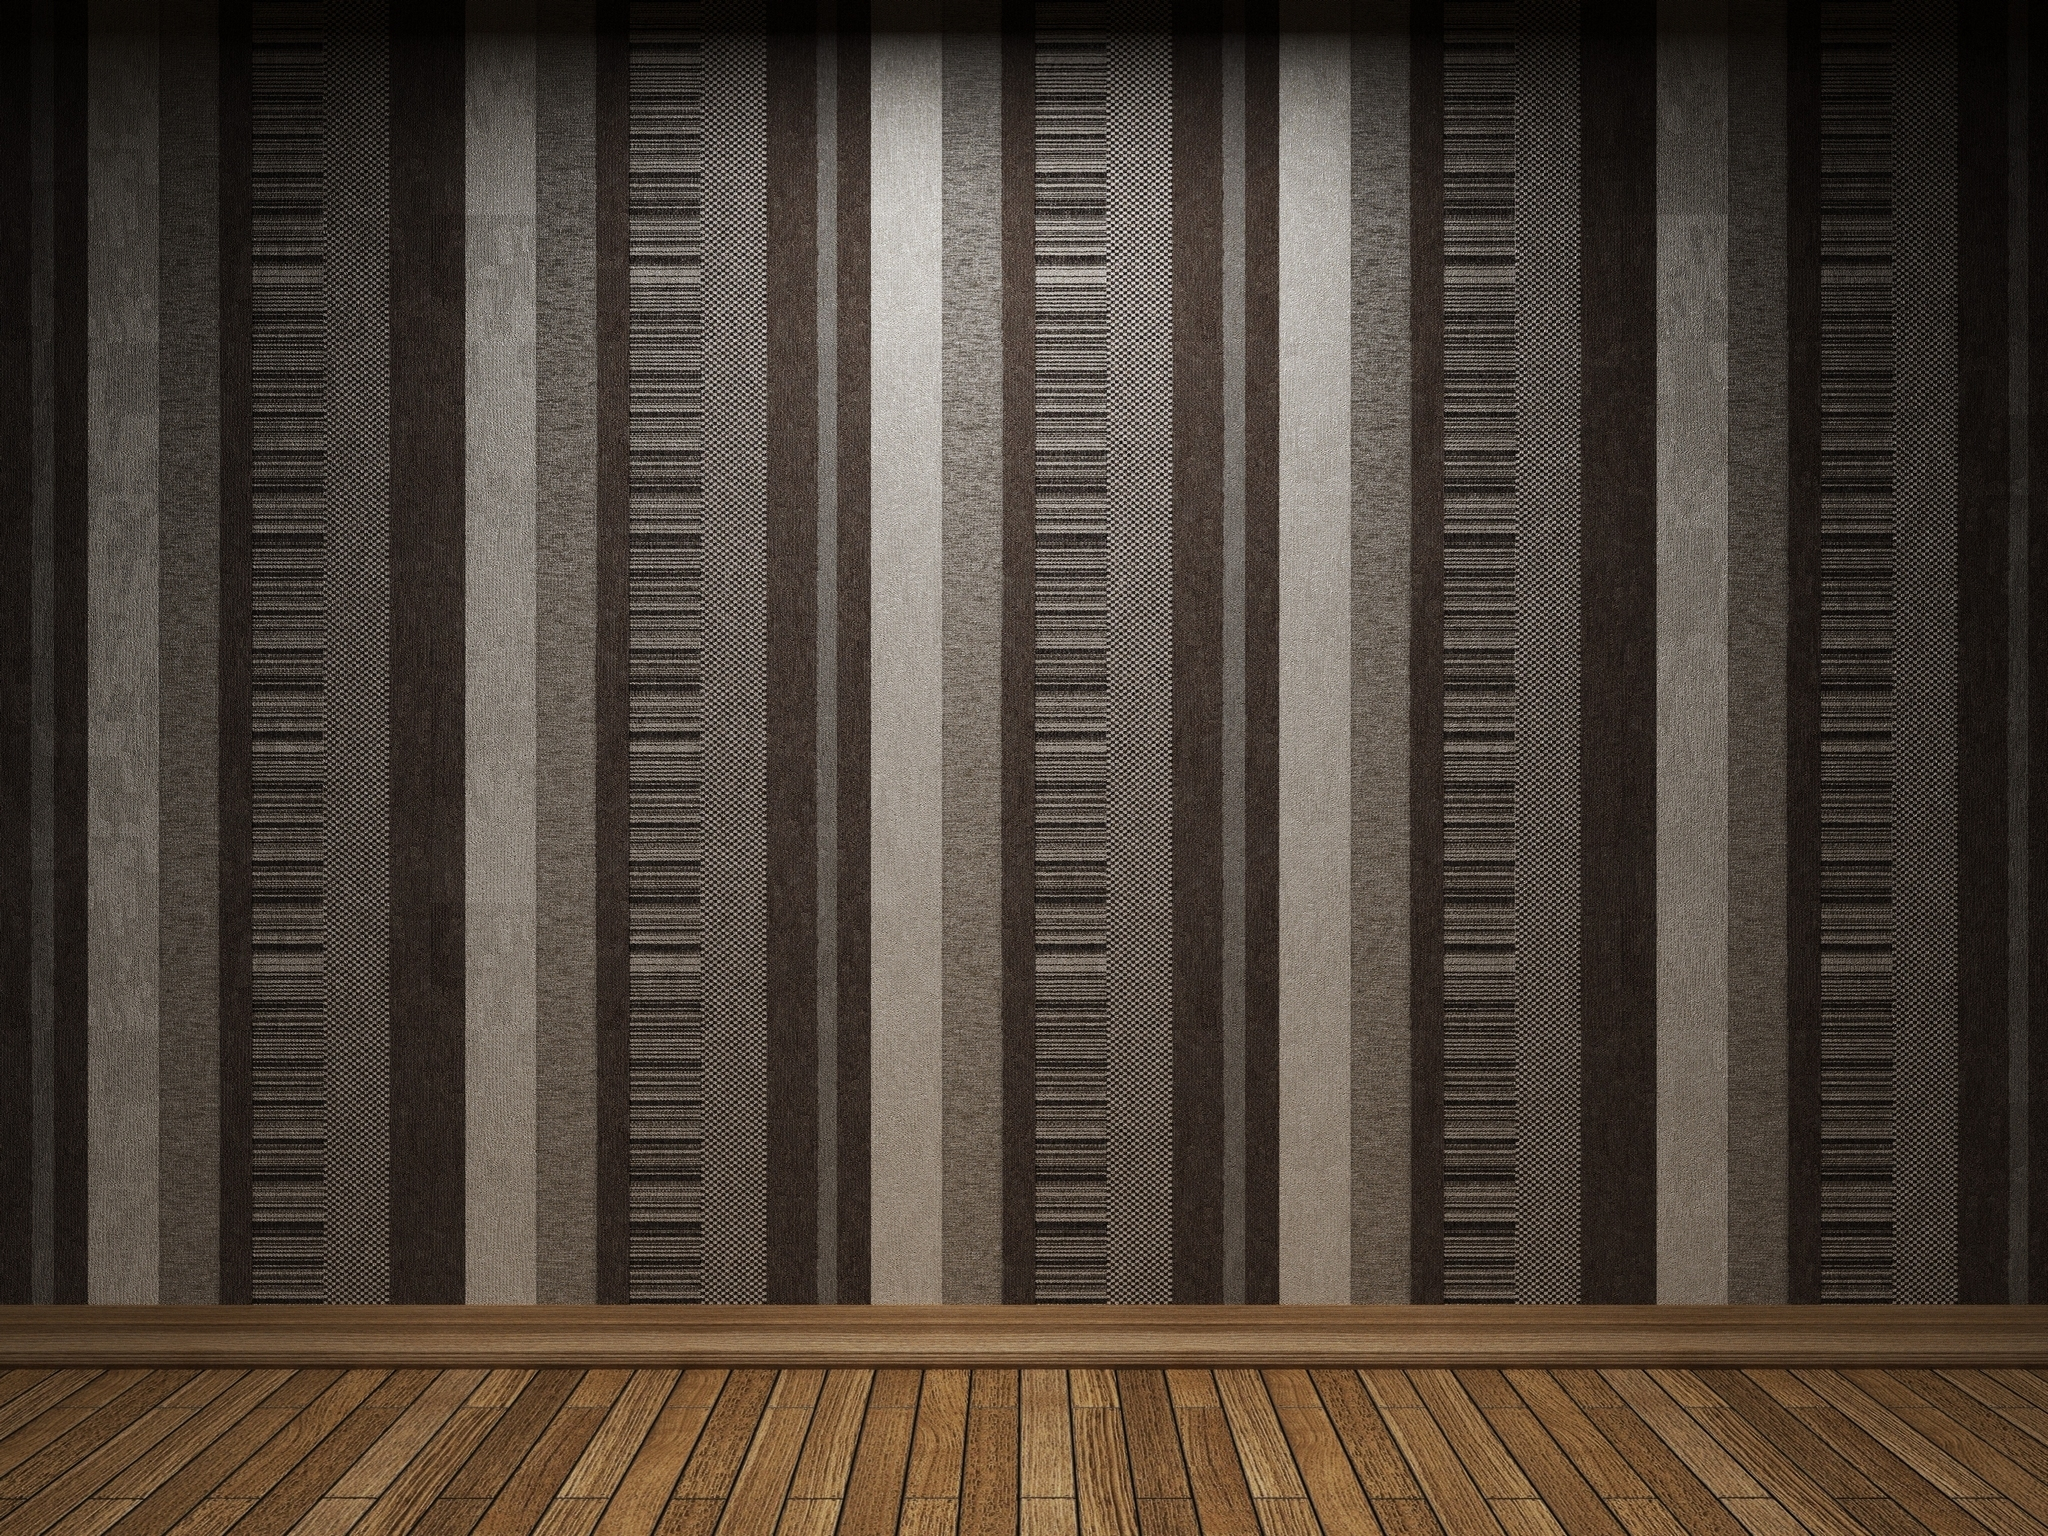 Designs images elegant wall design hd wallpaper and background photos 22687151 - Simple design of wall ...